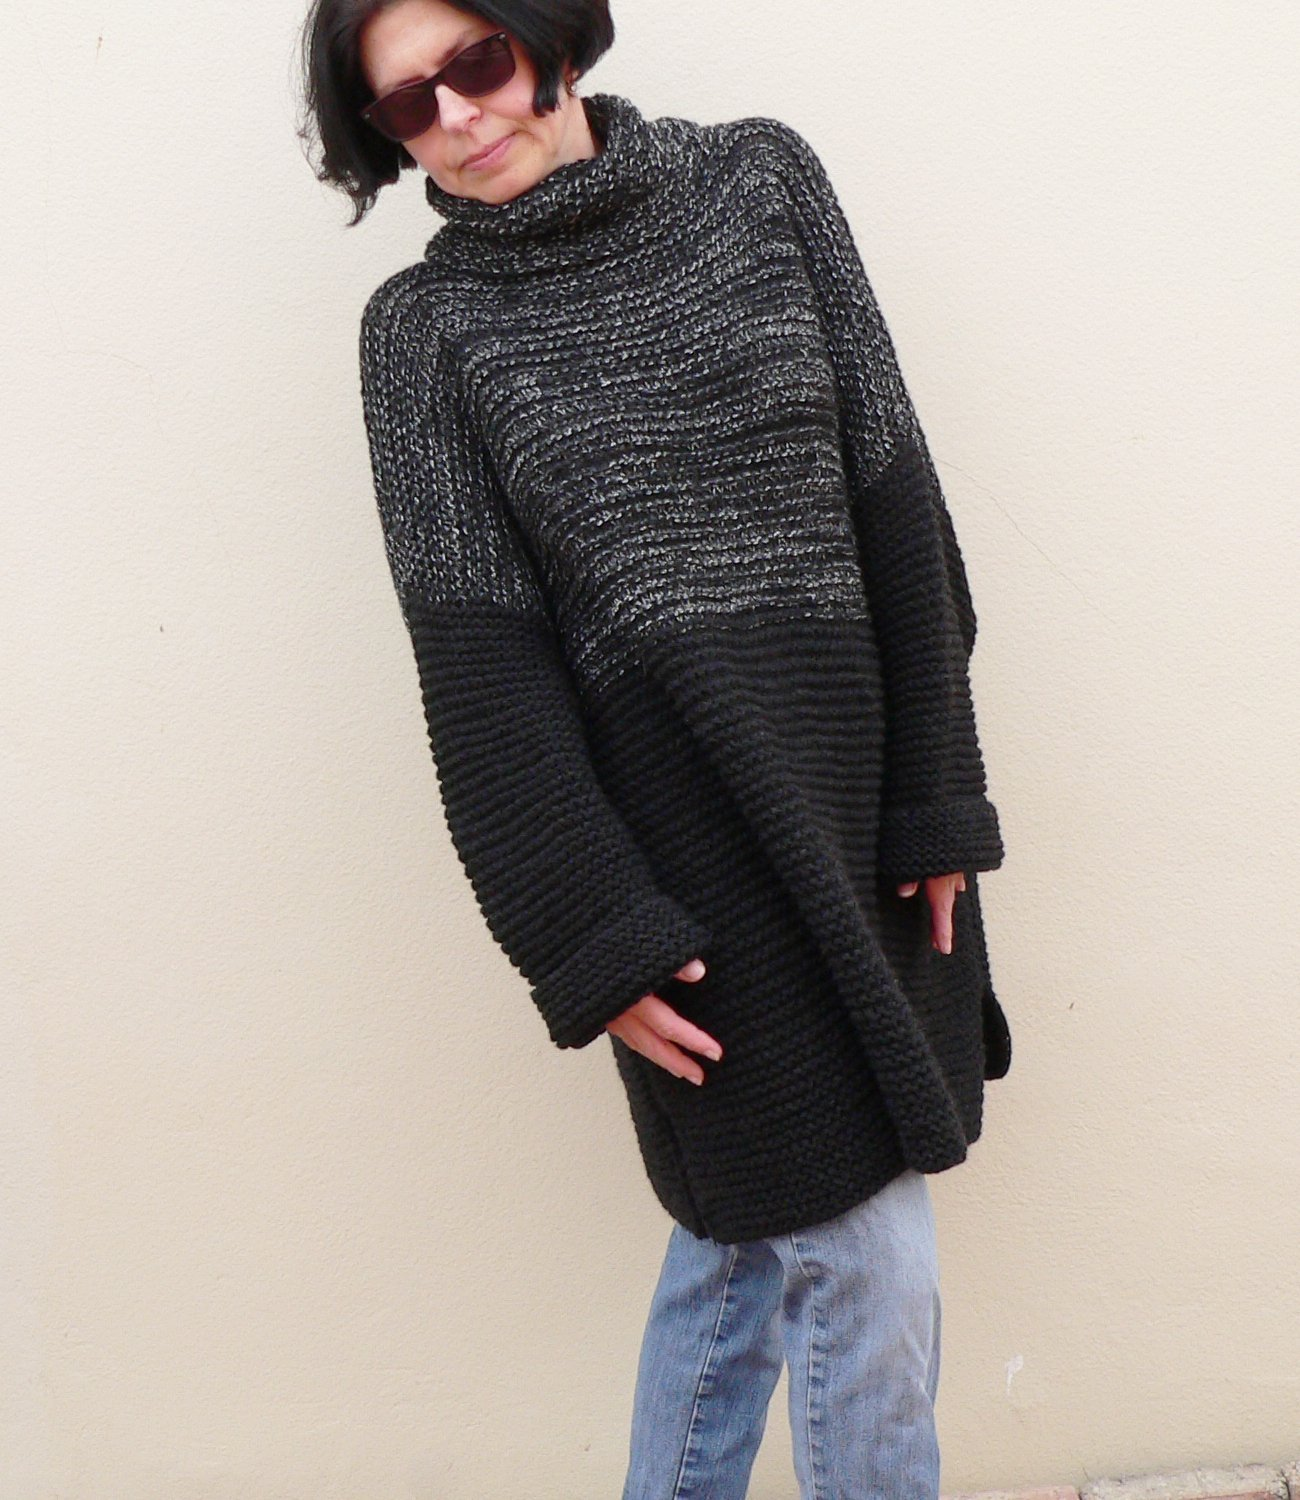 Black Gray Grunge Sweater Bulky Chunky Oversize Heavy Thick Jumper Alpaca Wool Cozy Slouchy Plus Size Loose Fit HandKnit Pullover